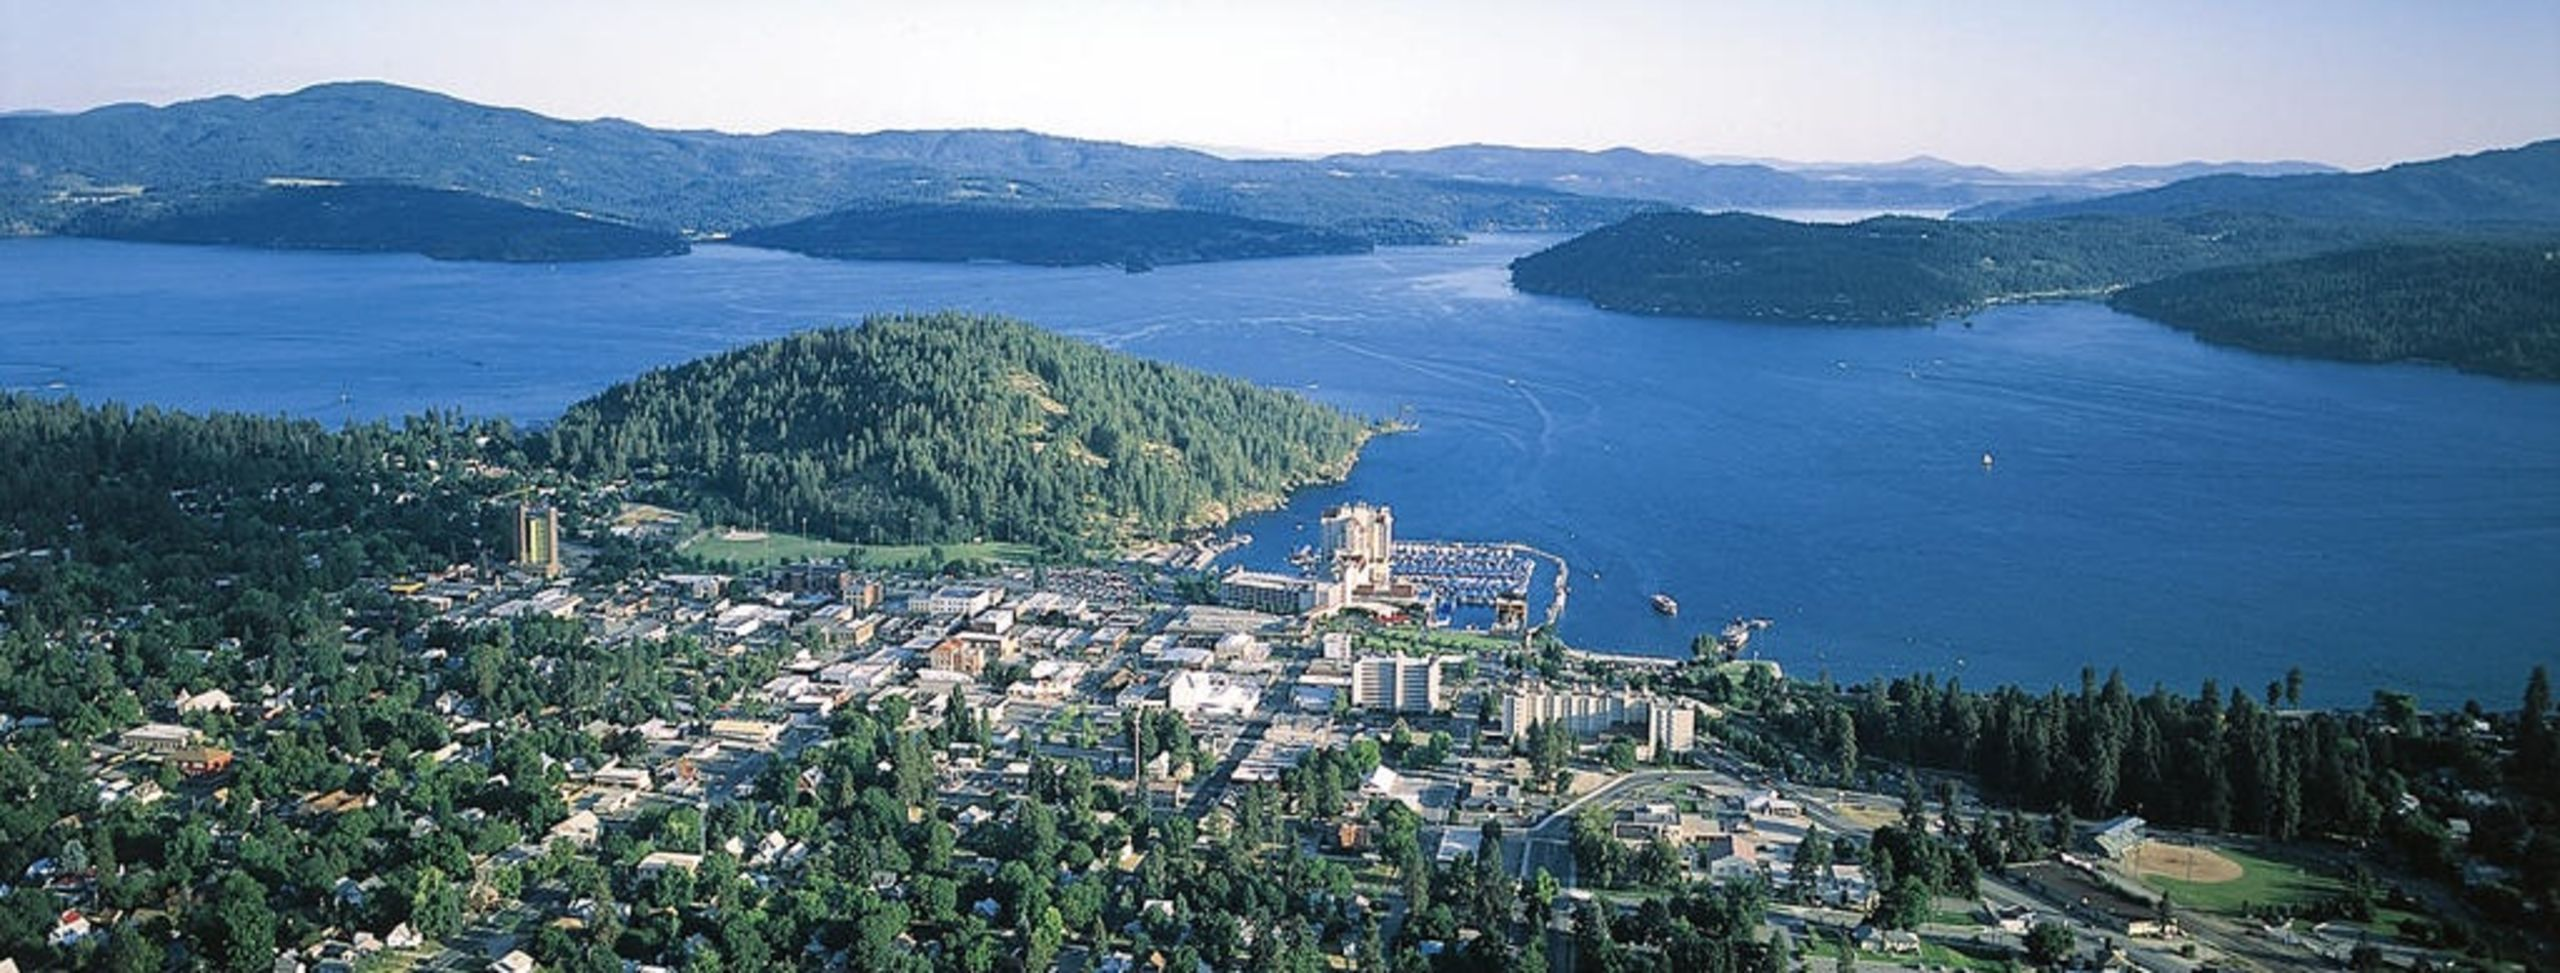 Beautiful Lake Coeur d'Alene, Idaho!